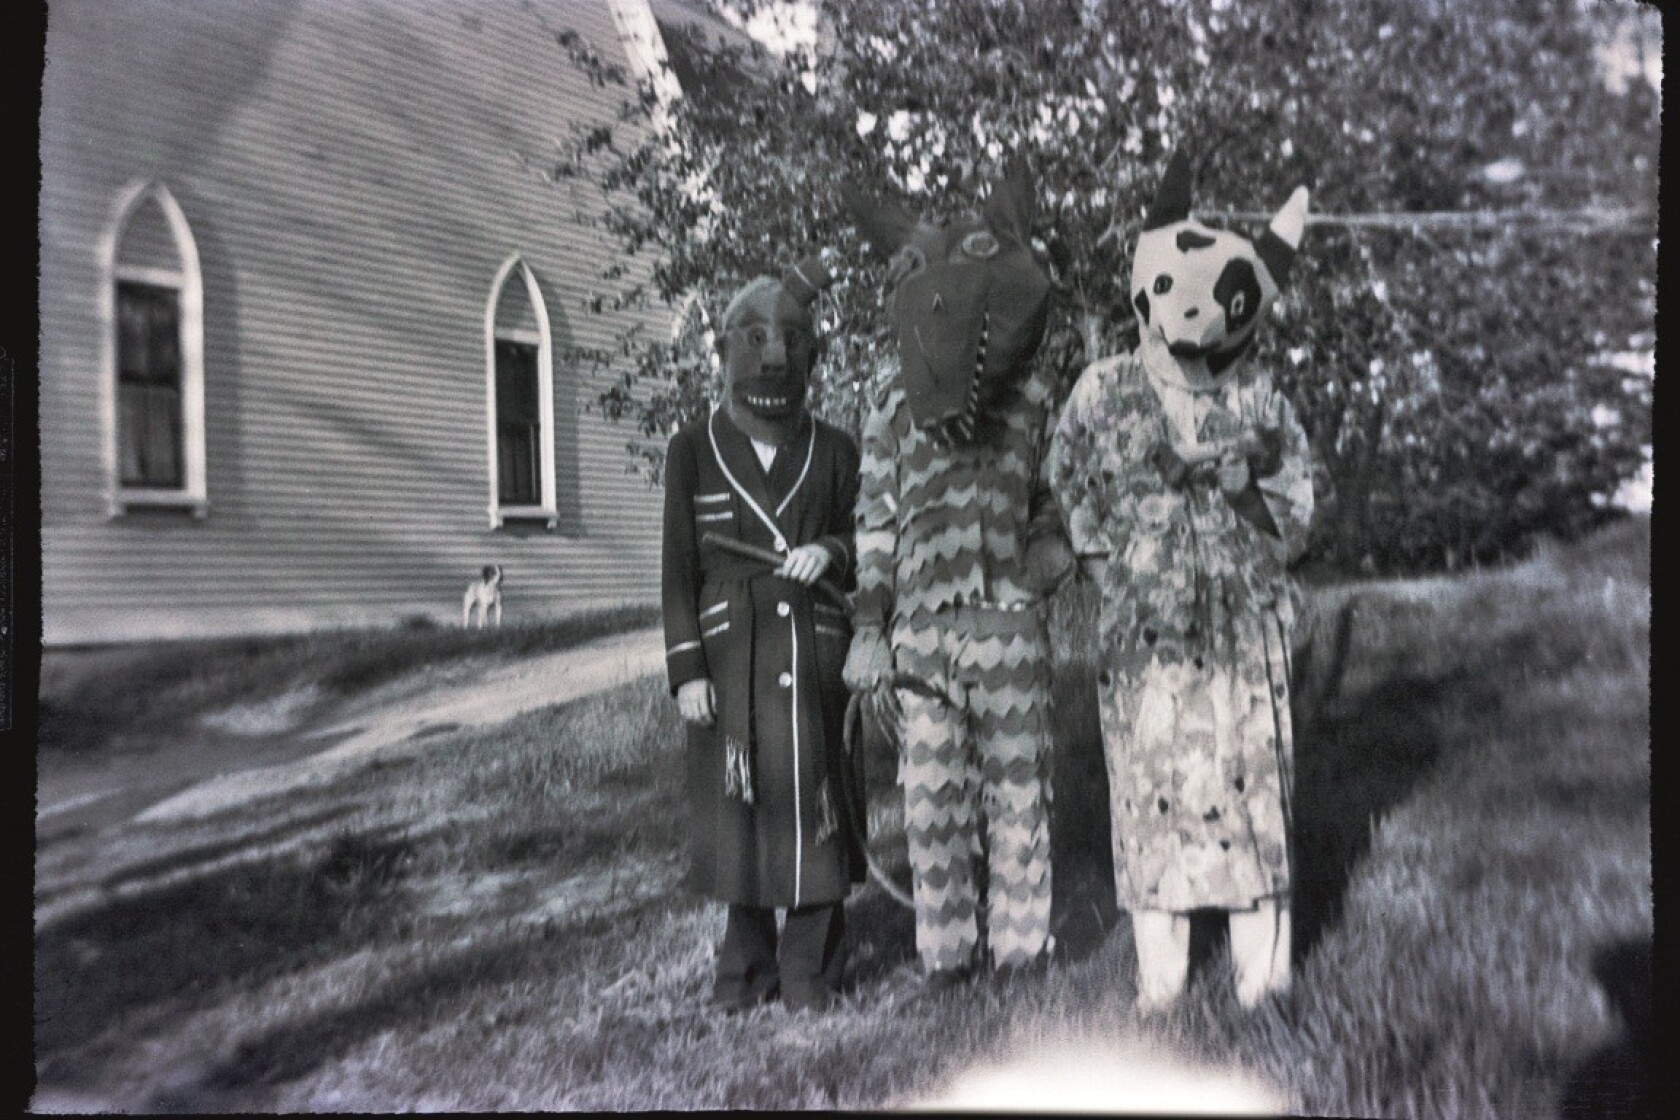 Vintage Halloween Costume Pictures.Vintage Halloween Costumes Used To Be Creepy Instead Of Sexy Los